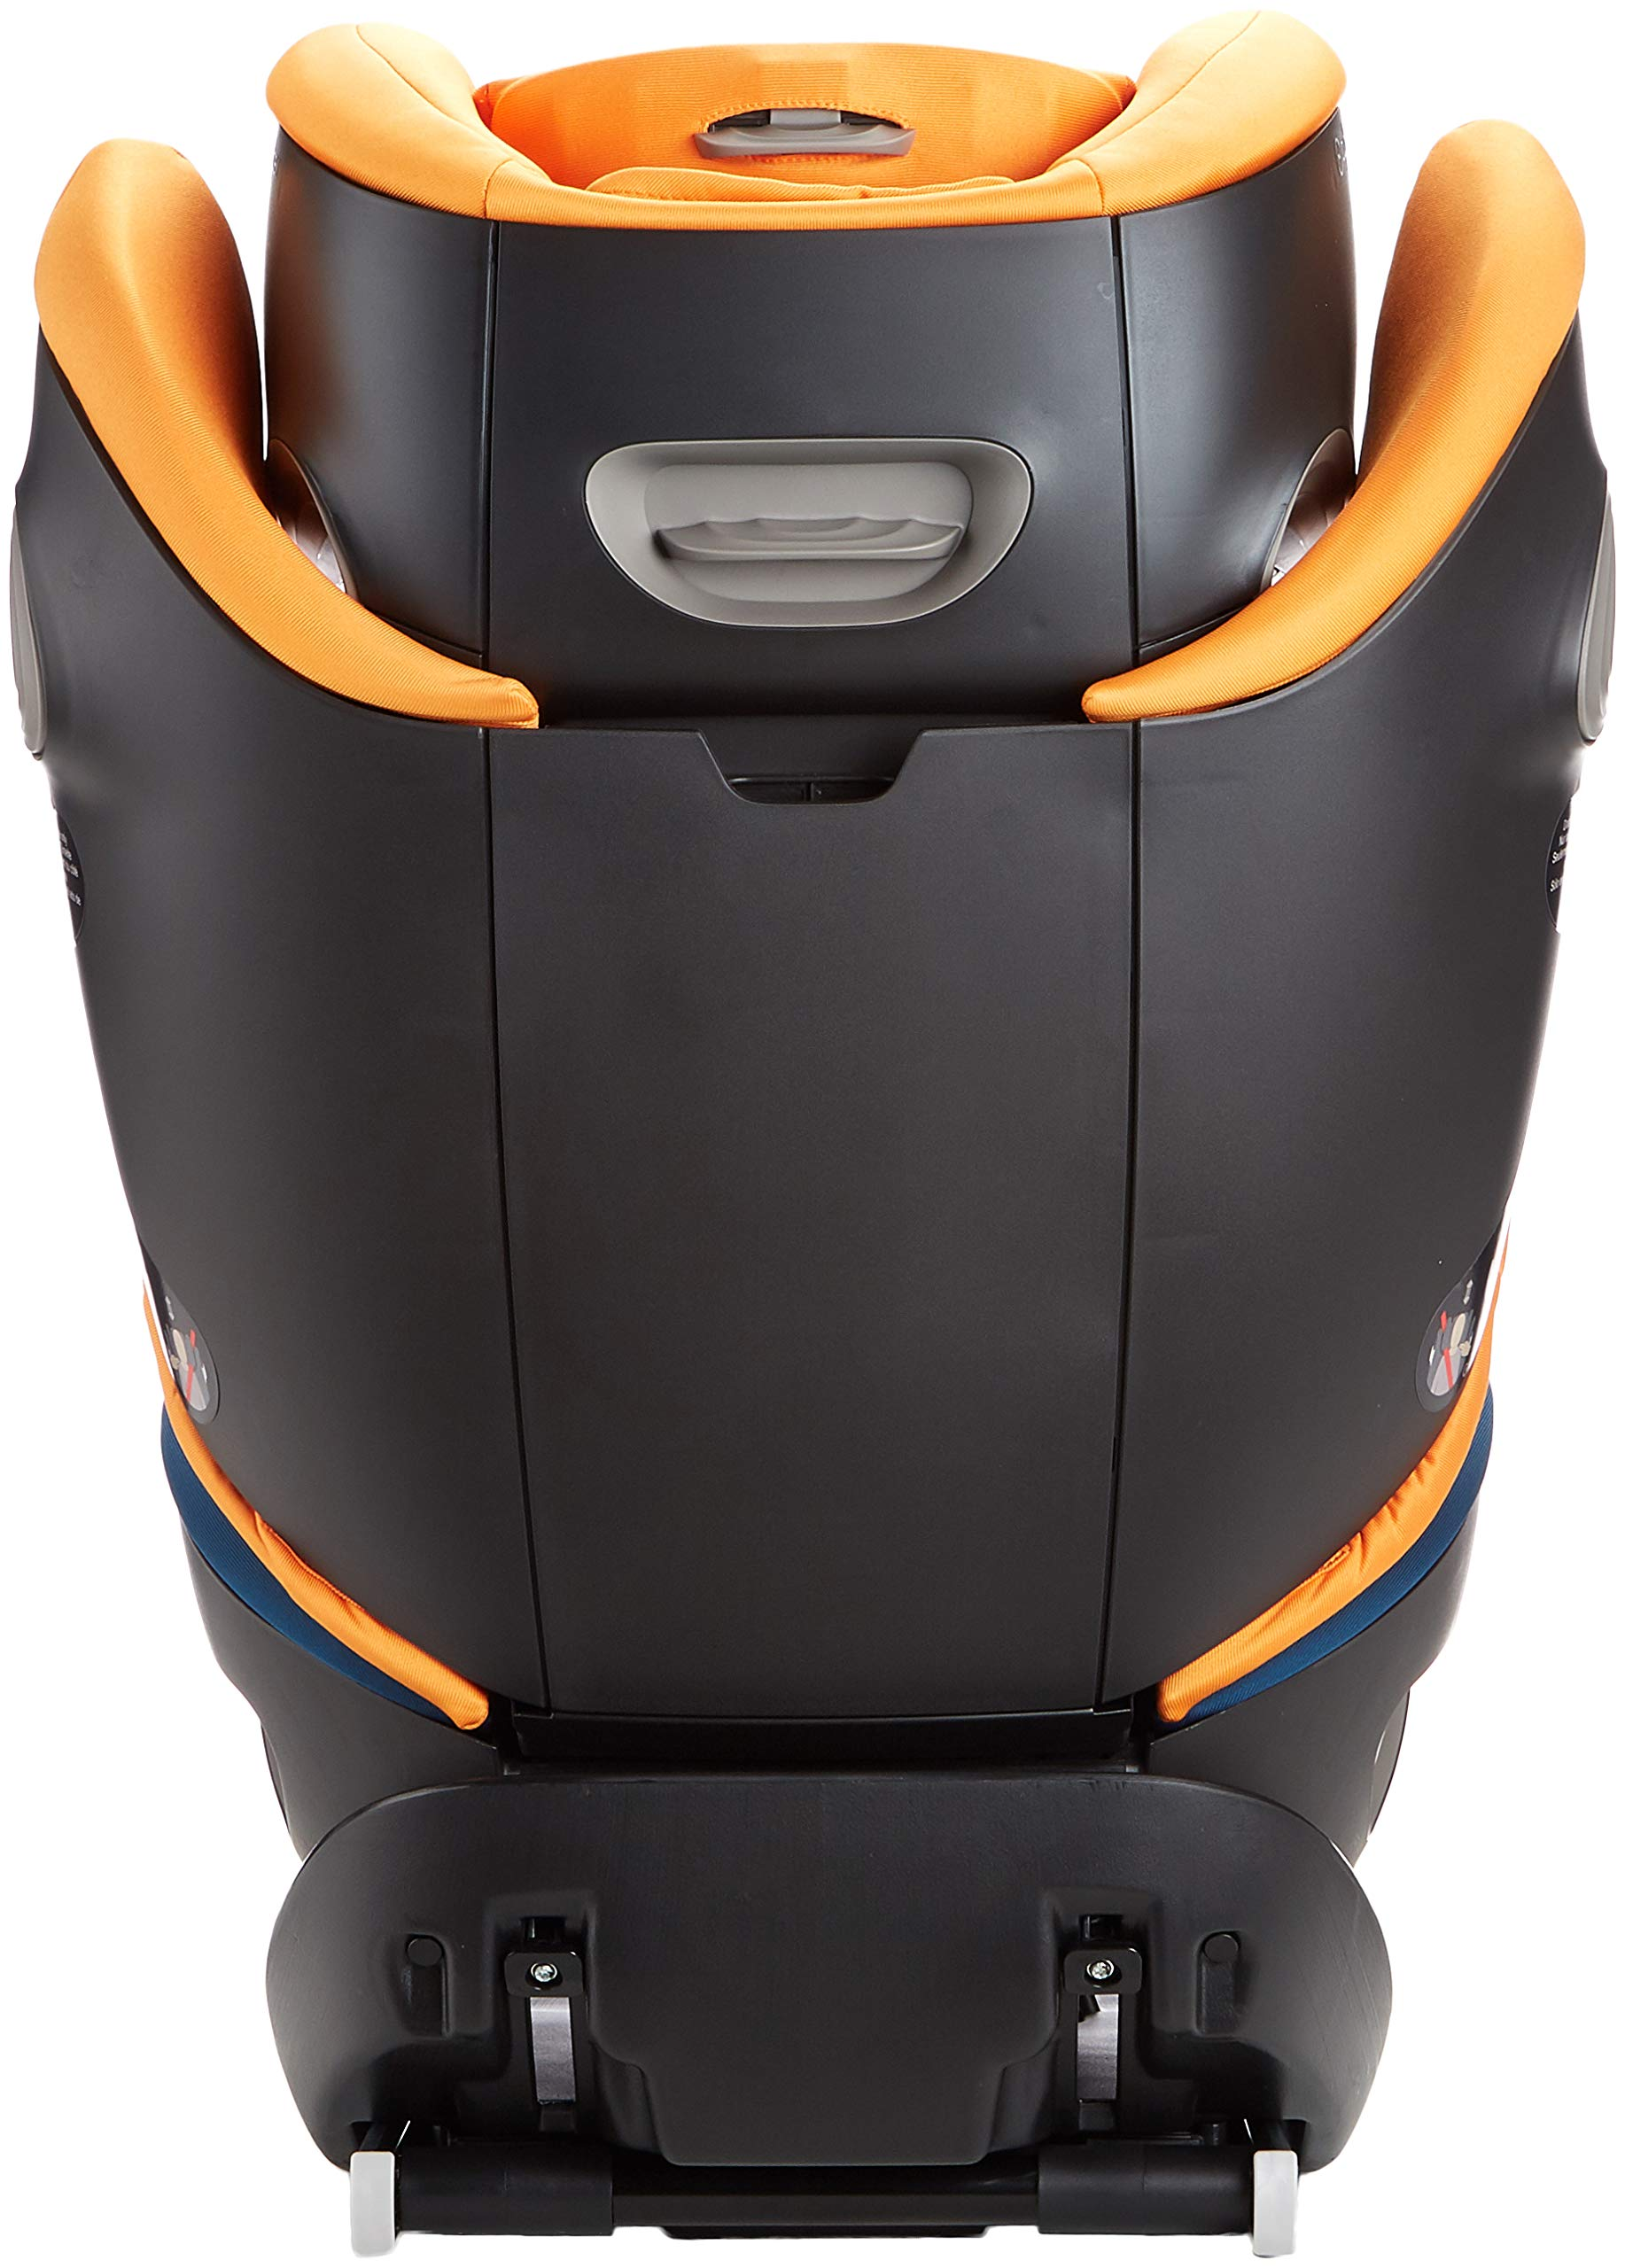 CYBEX Gold Pallas S-Fix 2-in-1 Child's Car Seat, For Cars with and without ISOFIX, Group 1/2/3 (9-36 kg), From approx. 9 Months to approx. 12 Years, Tropical Blue Cybex Sturdy and high-quality child car seat for long-term use - For children aged approx. 9 months to approx. 12 years (9-36 kg), Suitable for cars with and without ISOFIX Maximum safety - Depth-adjustable impact shield, 3-way adjustable reclining headrest, Built-in side impact protection (L.S.P. System), Energy-absorbing shell 12-way height-adjustable comfort headrest, One-hand adjustable reclining position, Easy conversion to Solution S-Fix car seat for children 3 years and older (group 2/3) by removing impact shield and base 5